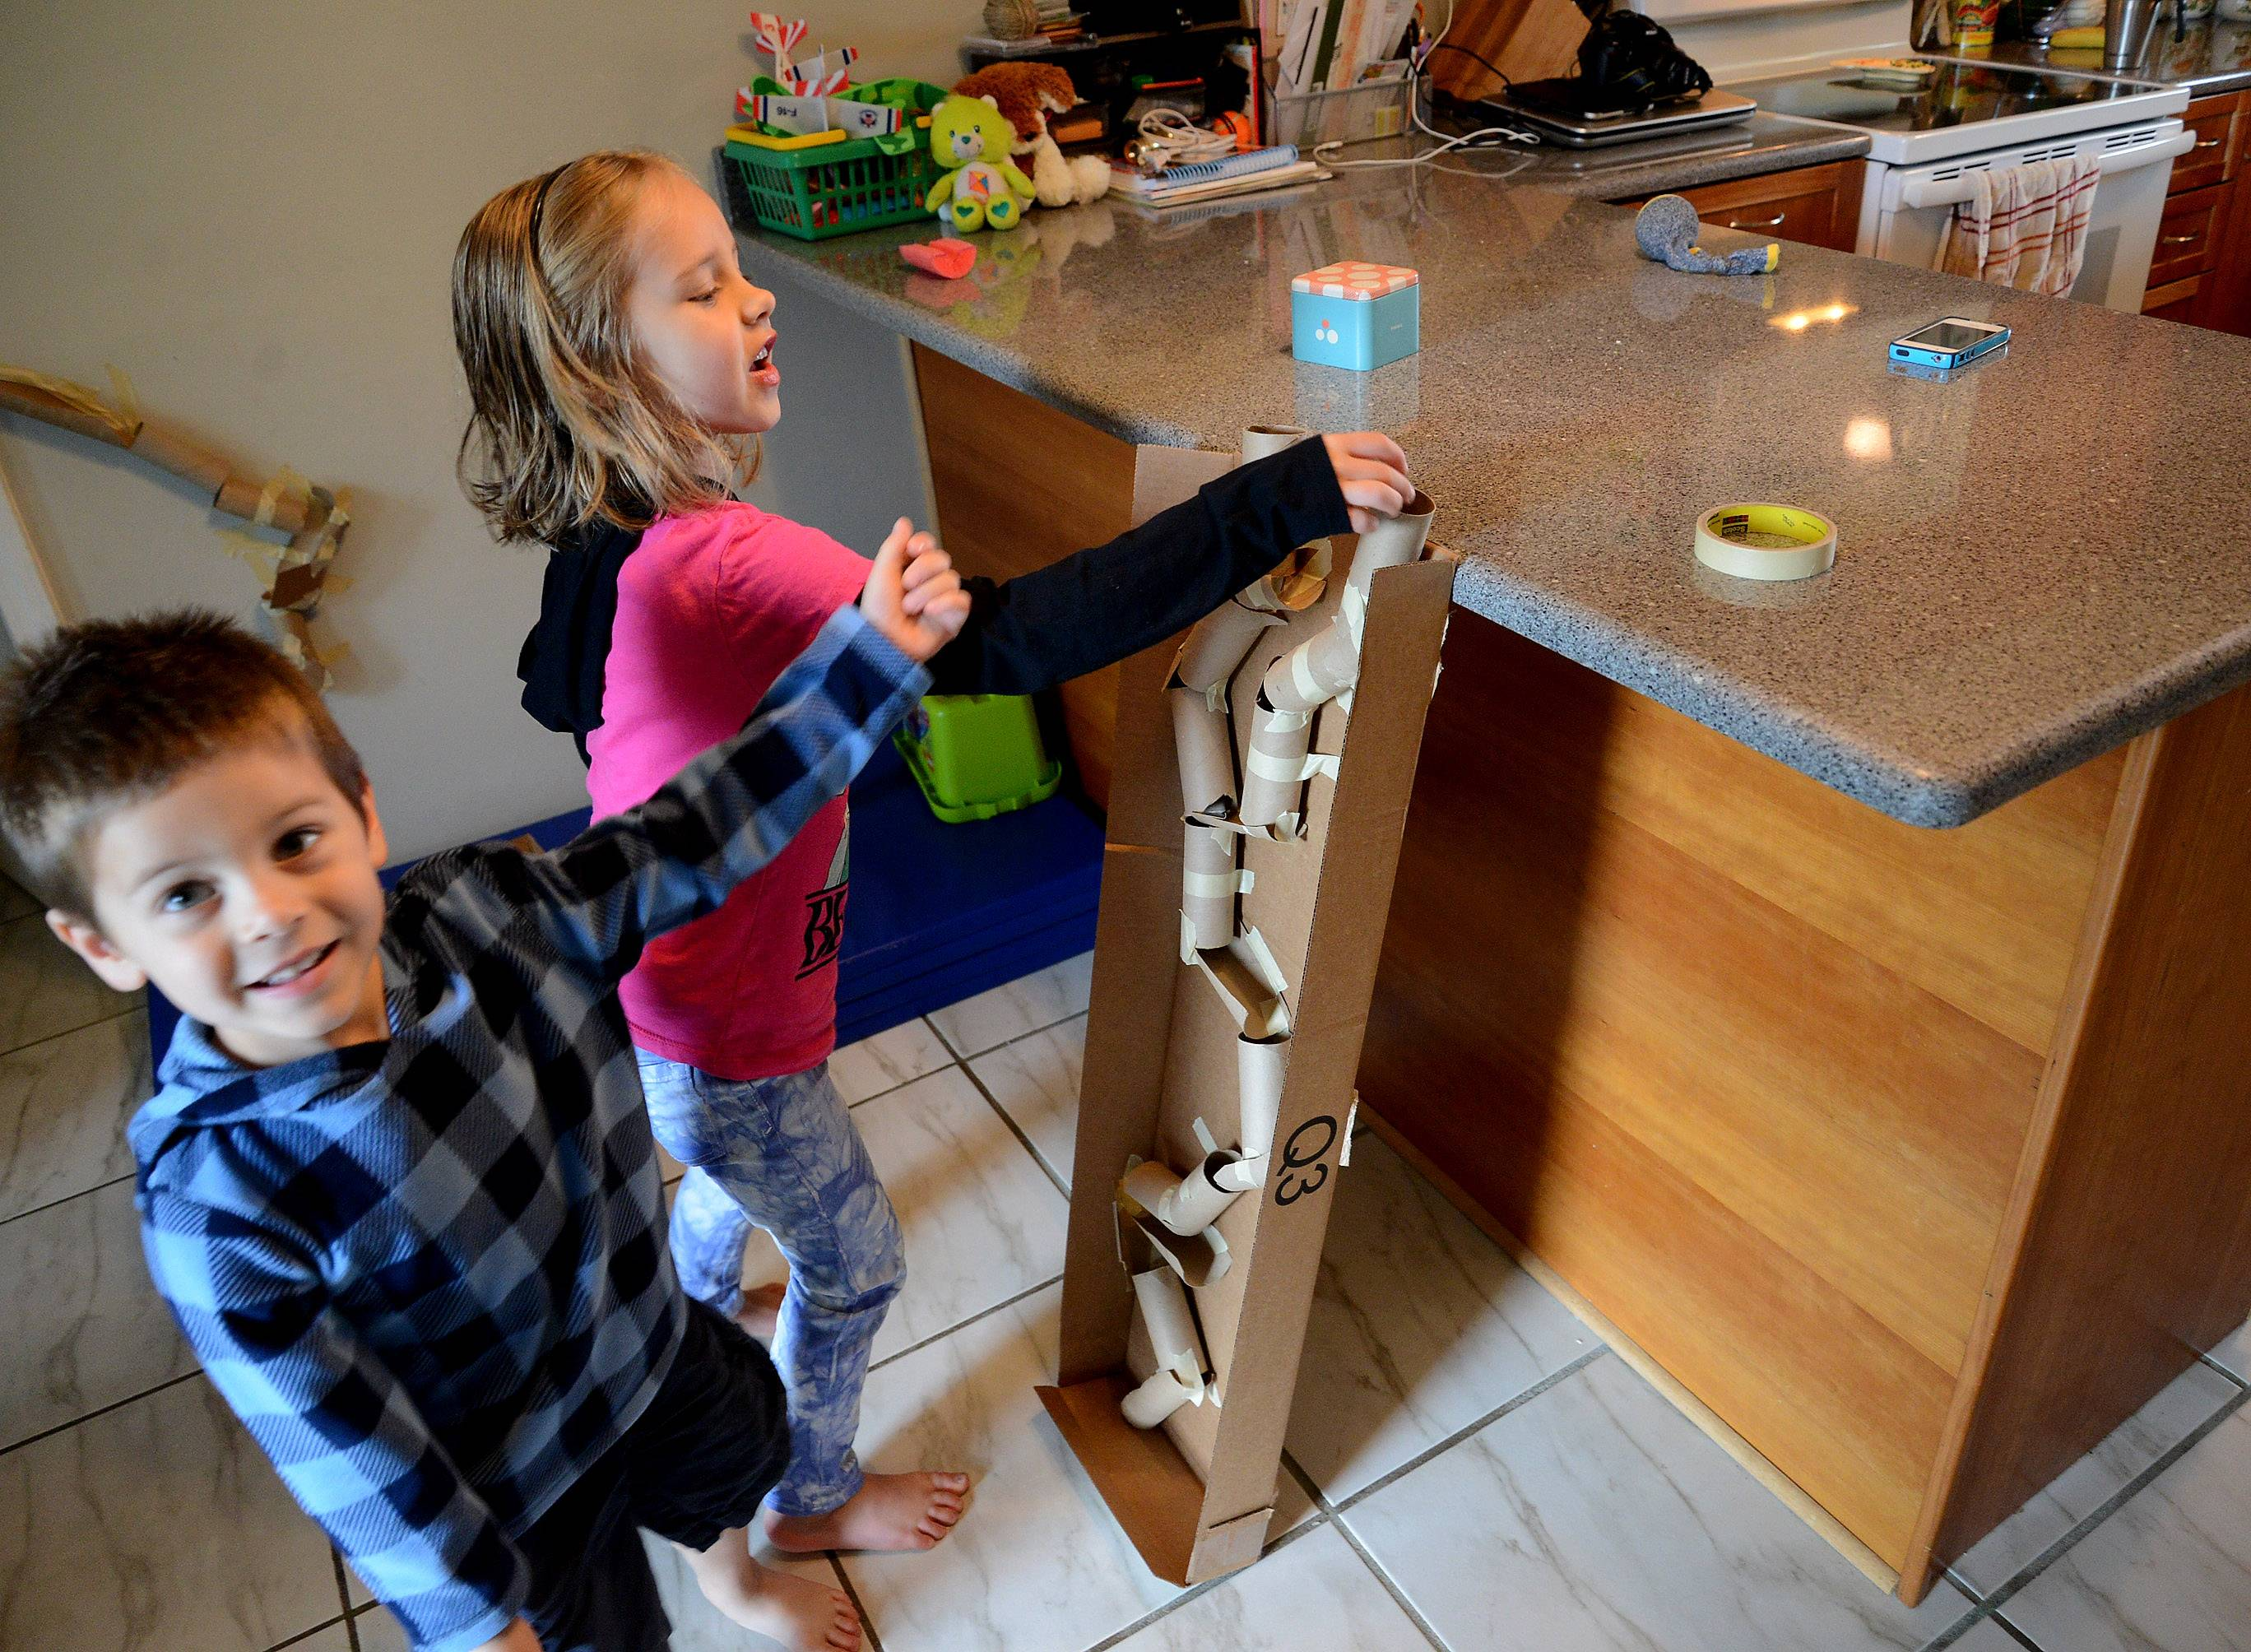 Justin and Lily Anderson demonstrate their marble runs.